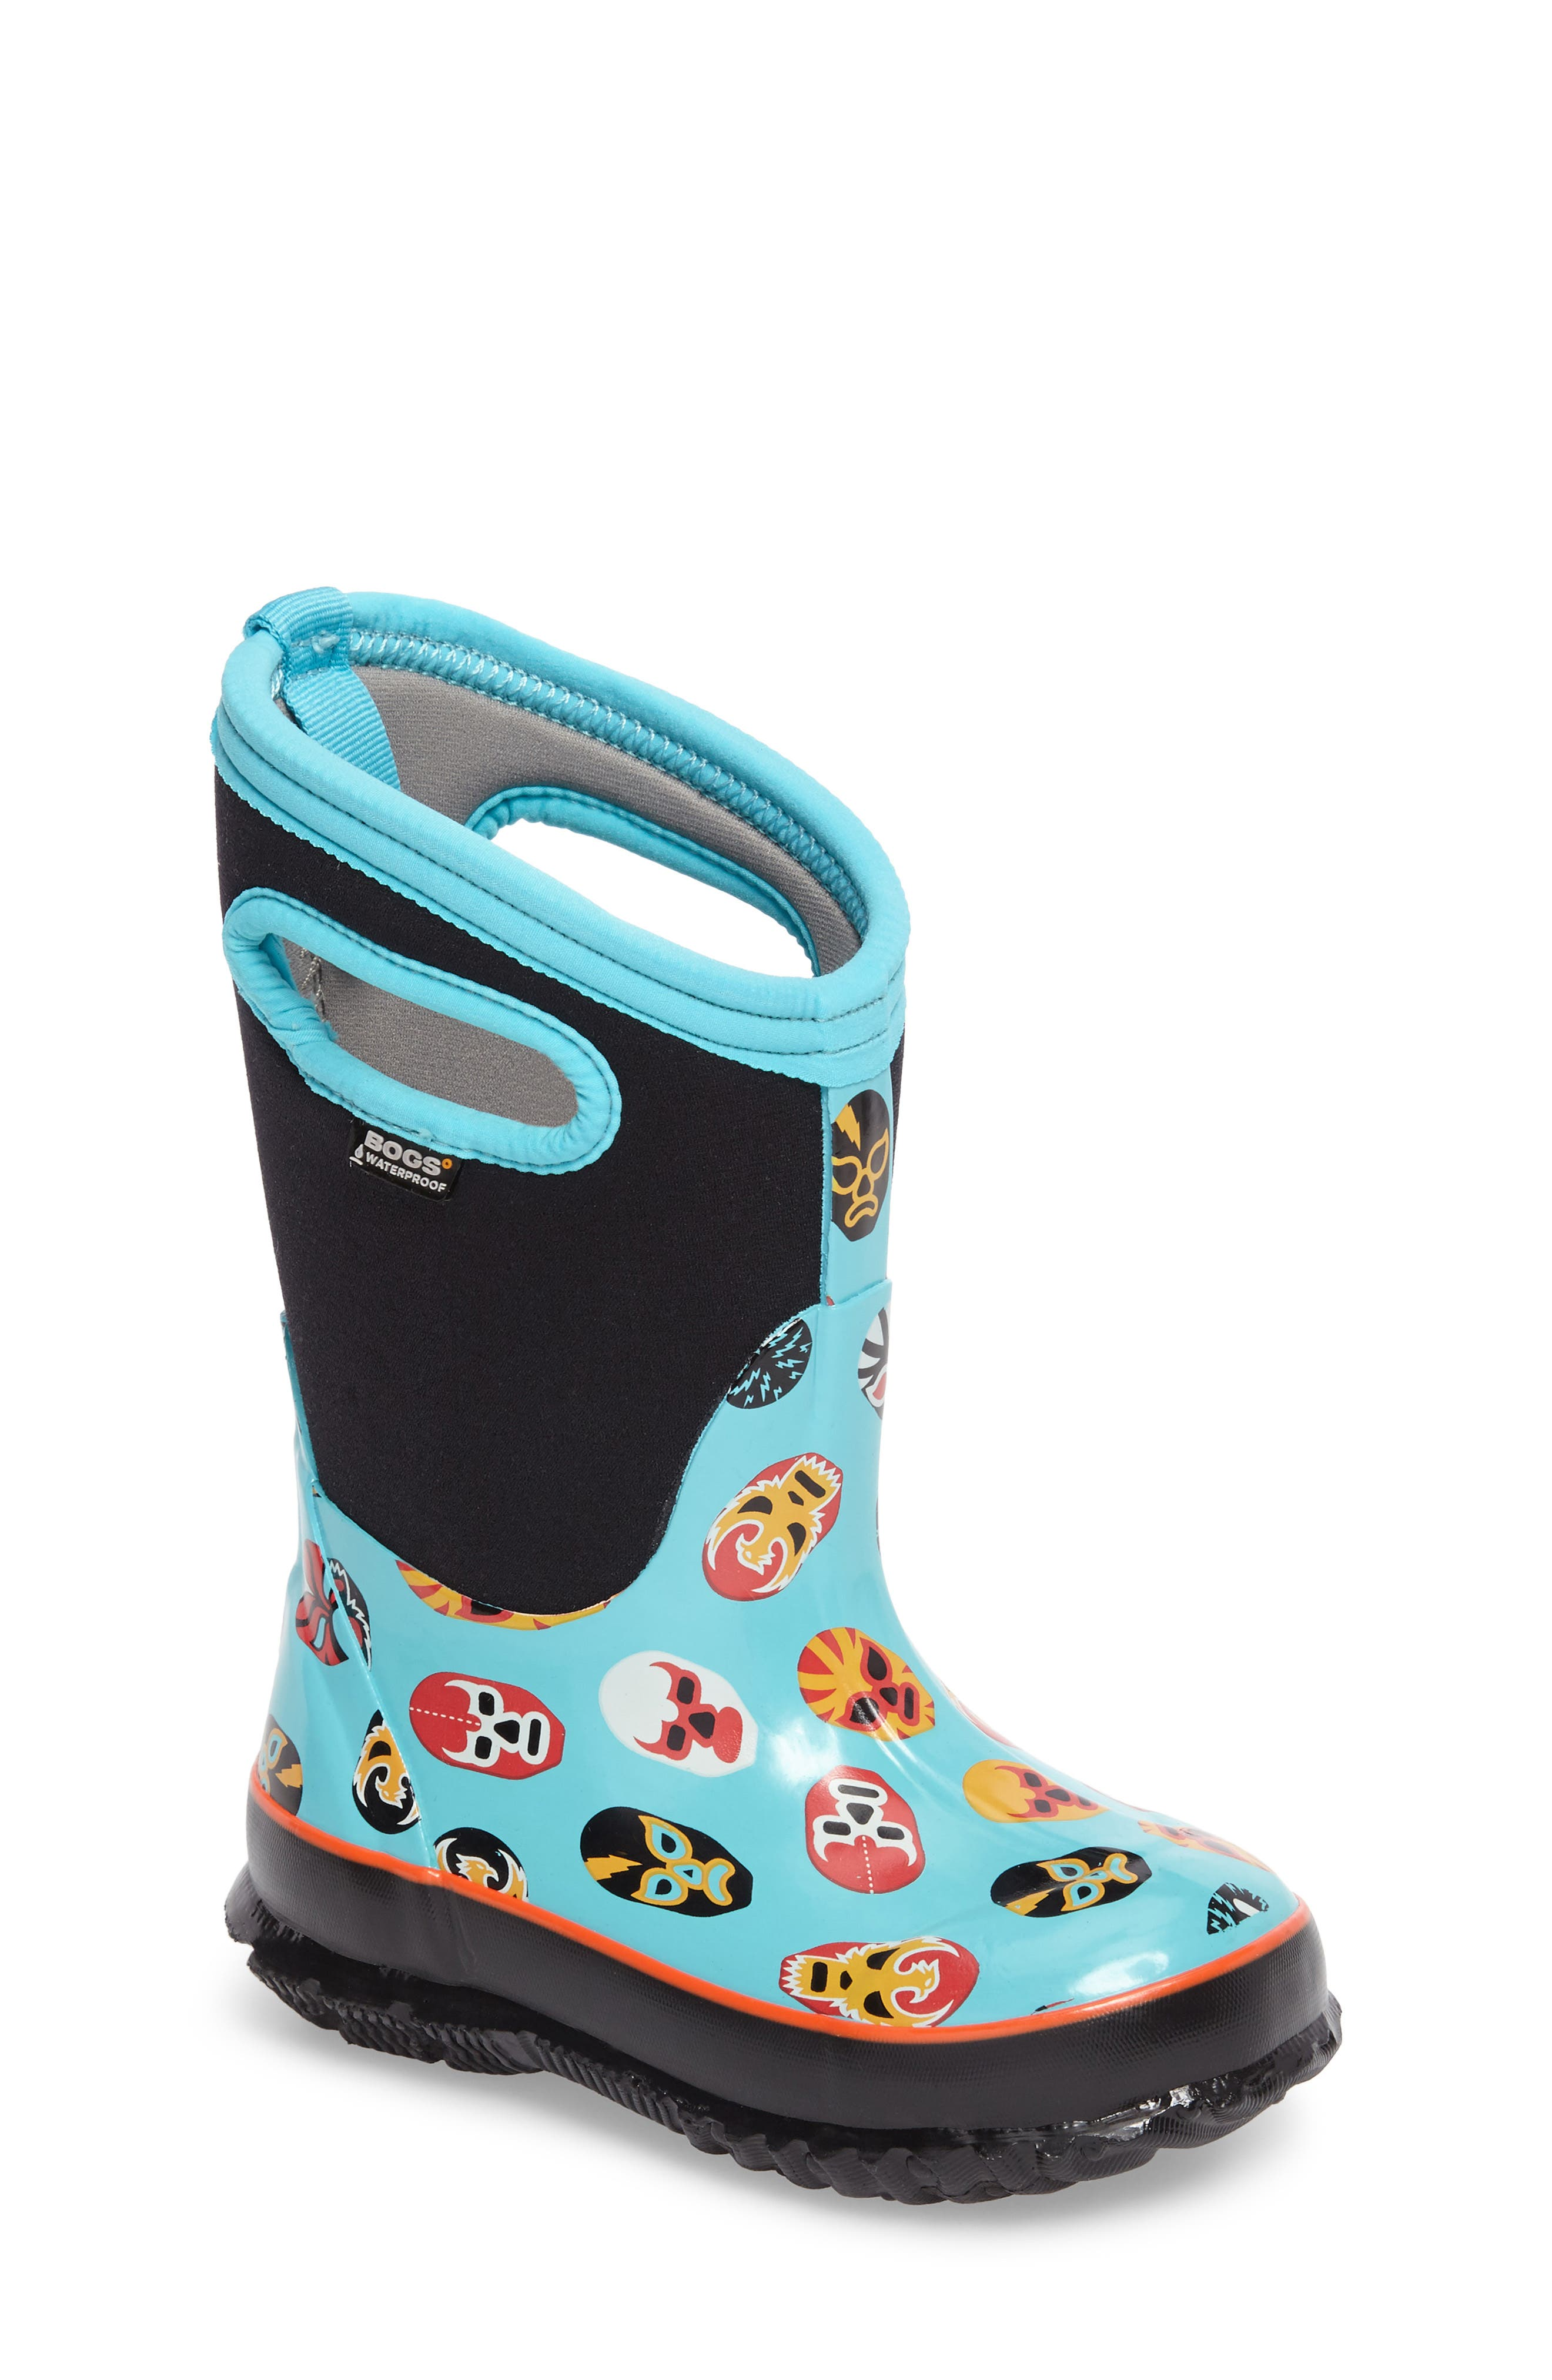 Alternate Image 1 Selected - Bogs Classic Mask Insulated Waterproof Boot (Toddler, Little Kid & Big Kid)